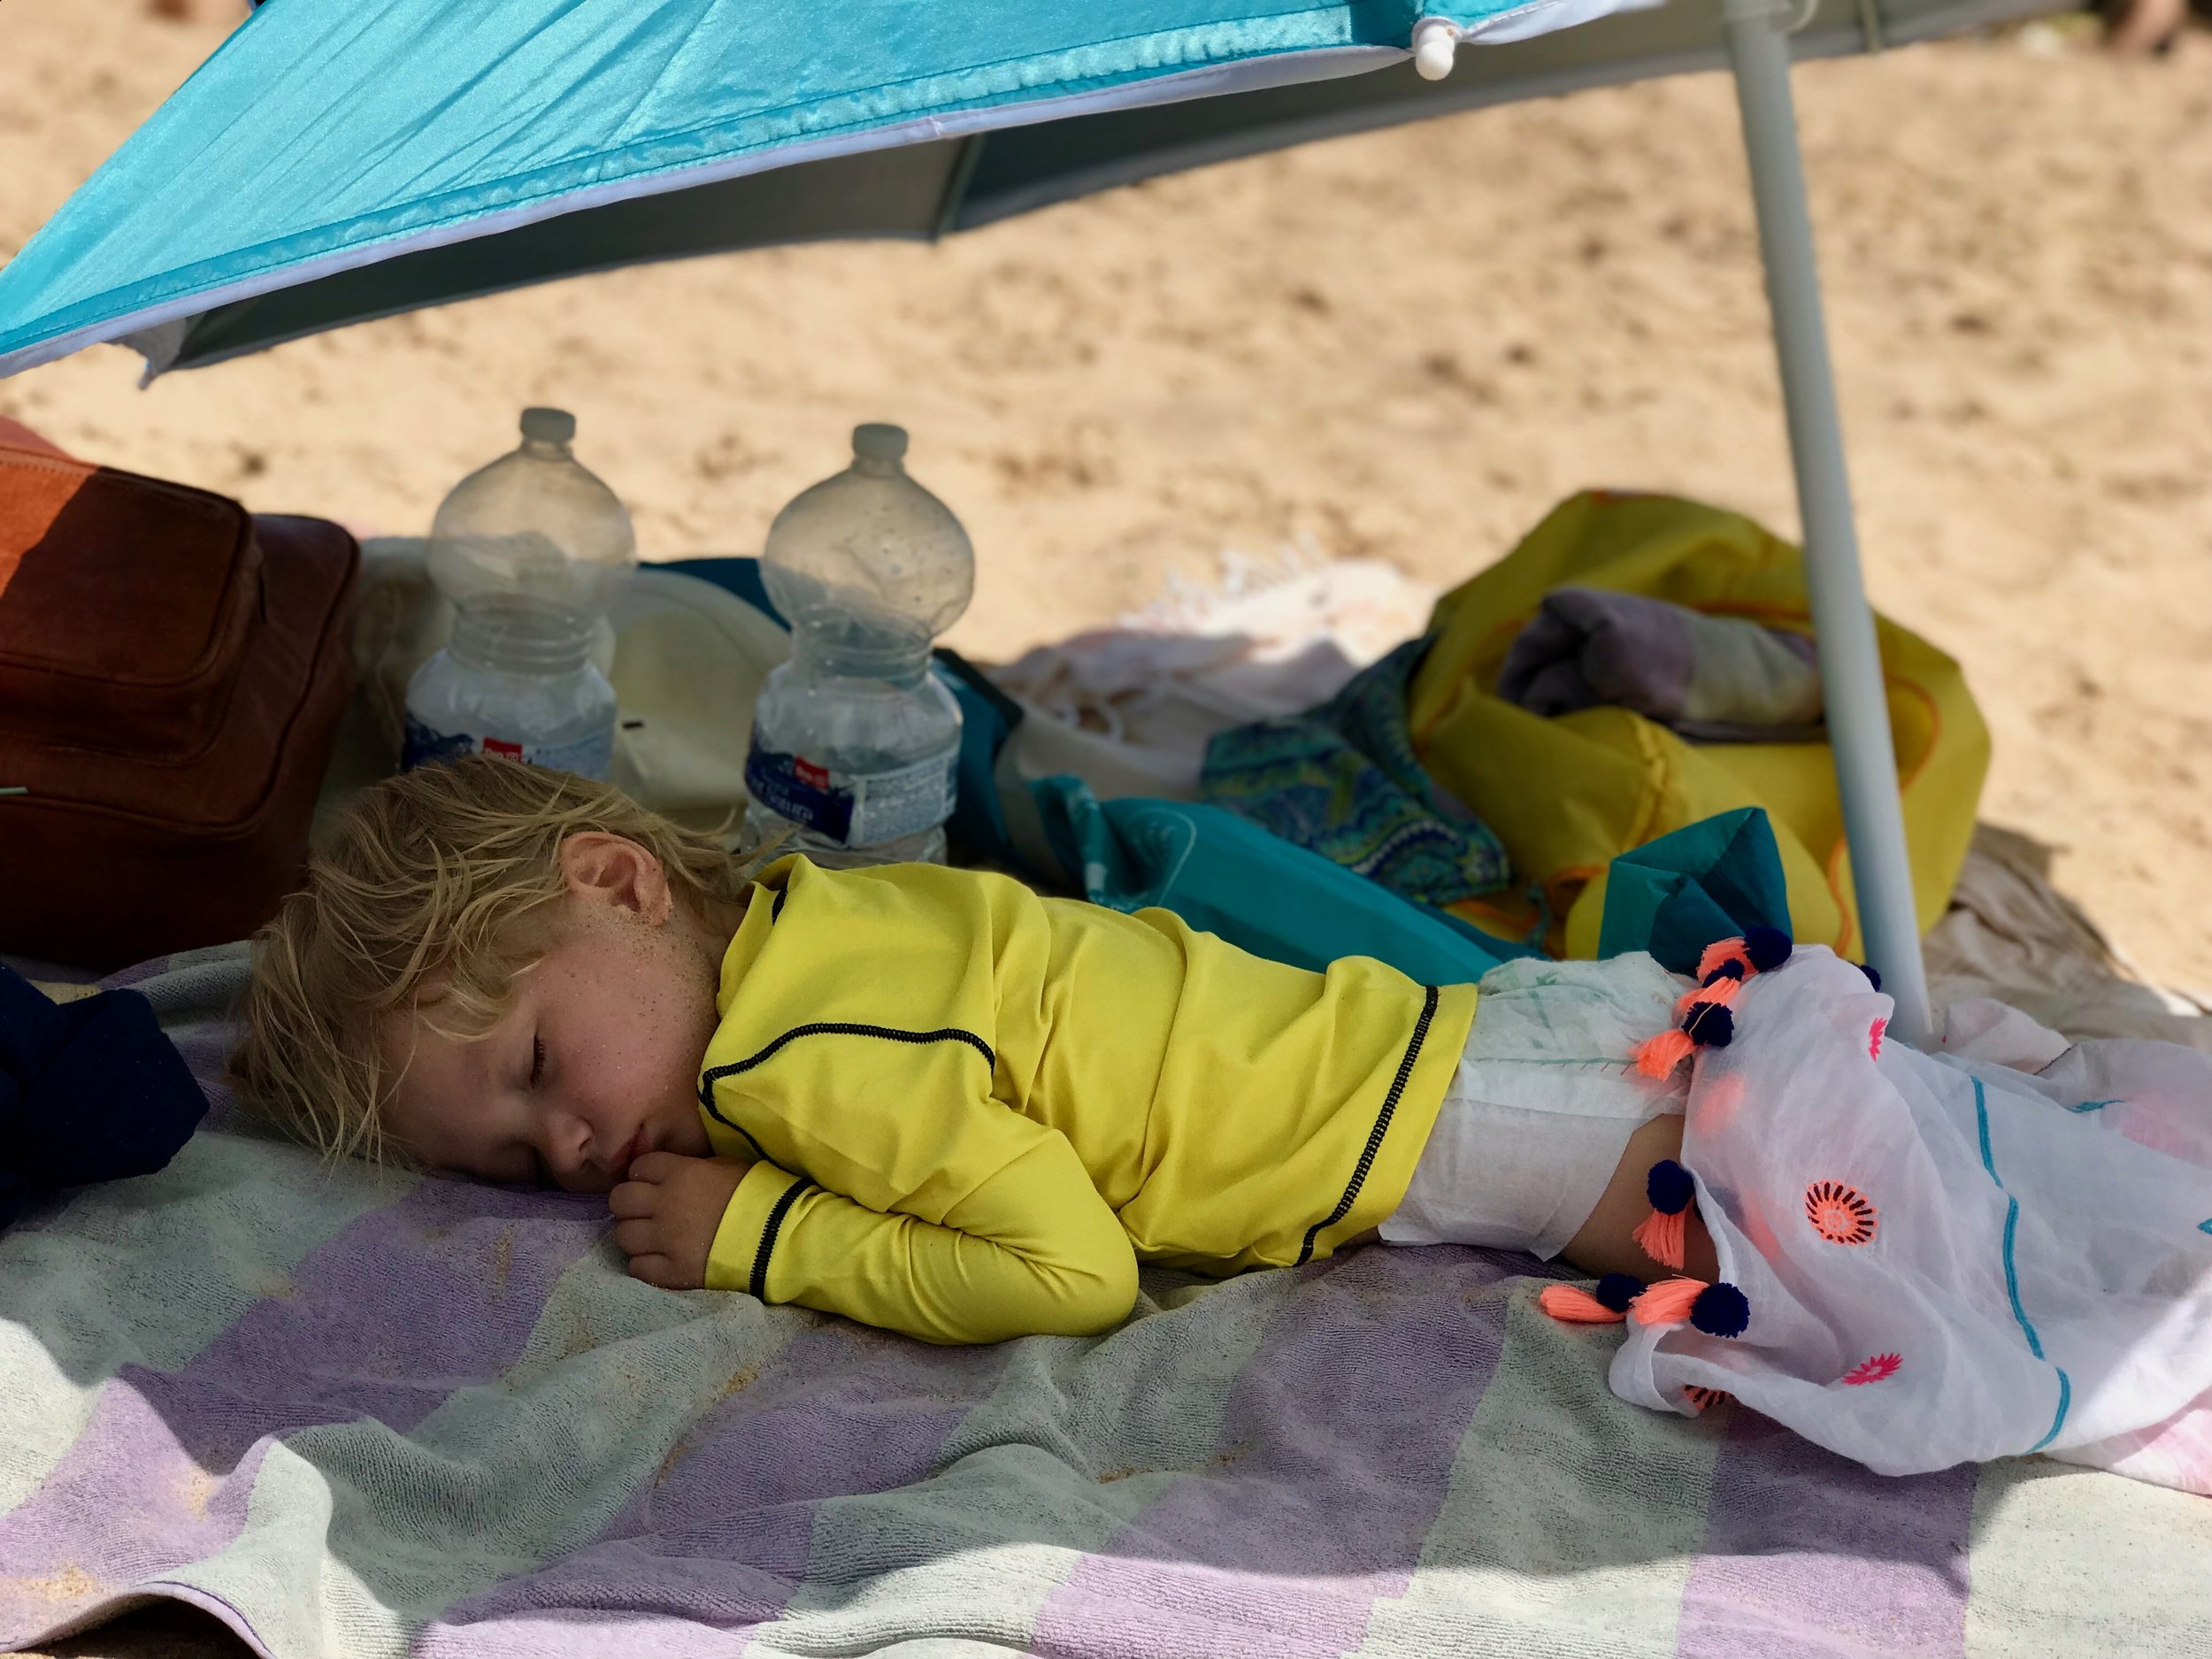 Jimmy napping at the beach.